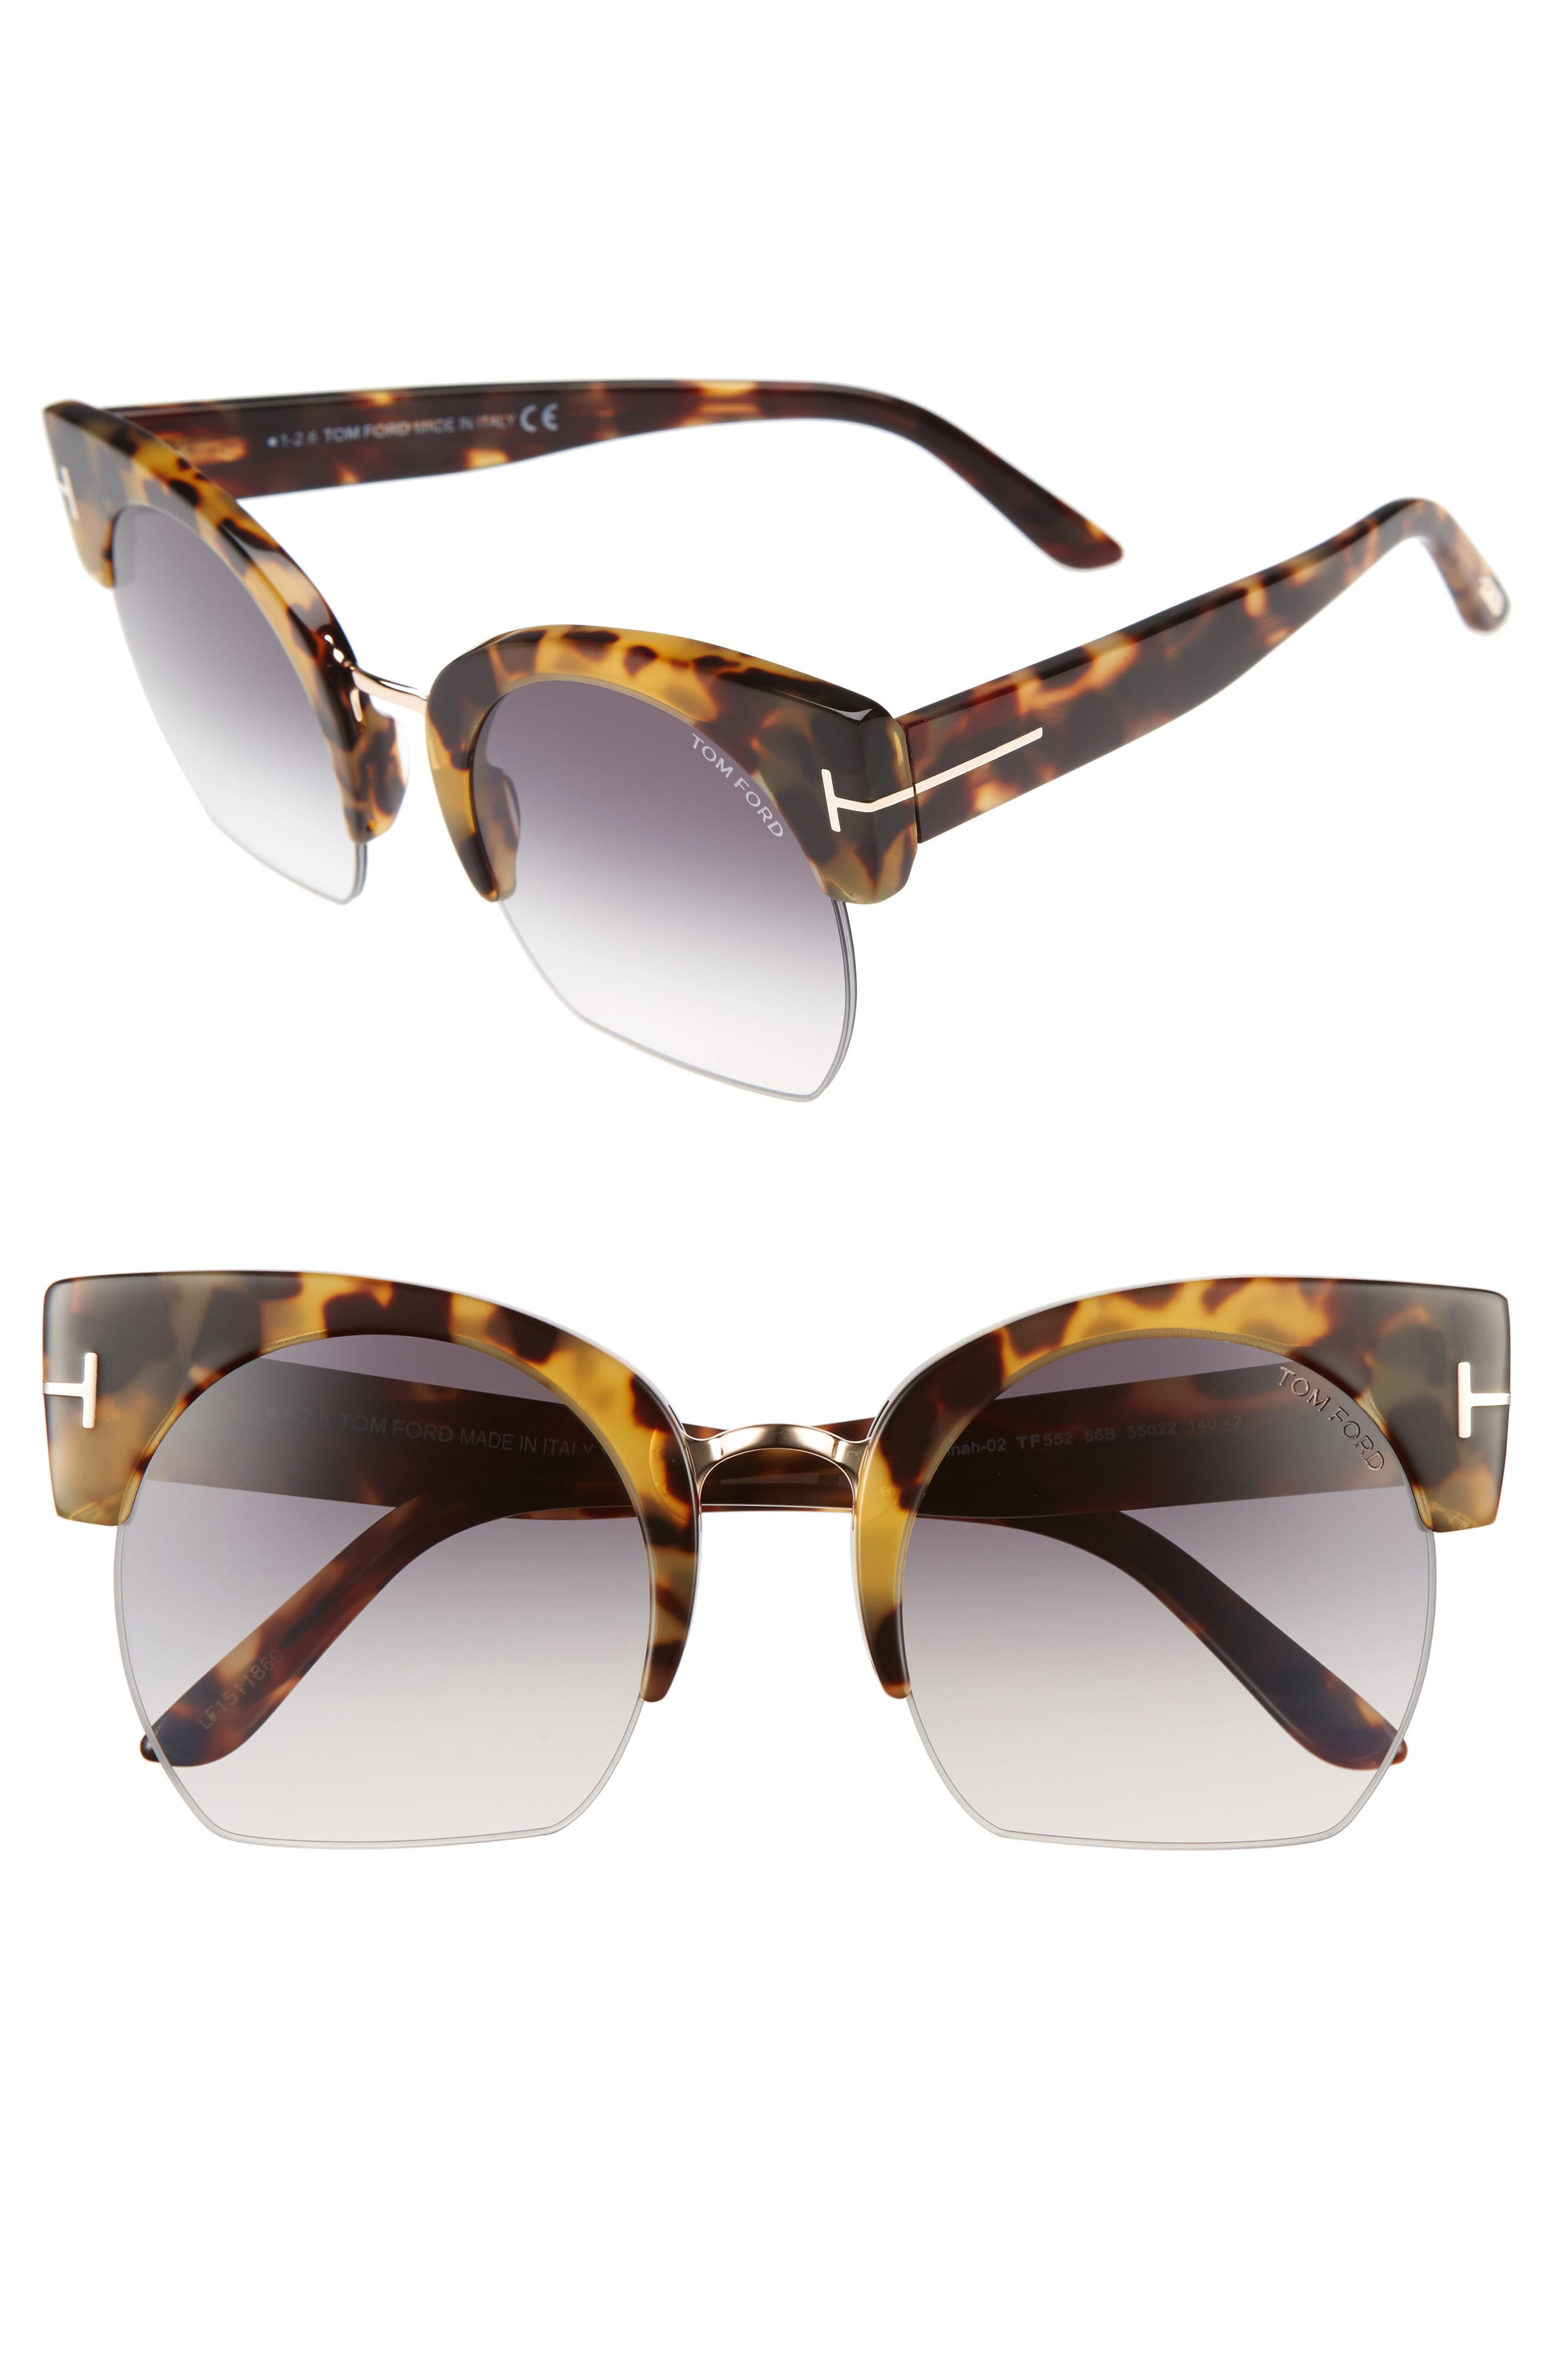 Main Image - Tom Ford Savannah 55mm Cat Eye Sunglasses